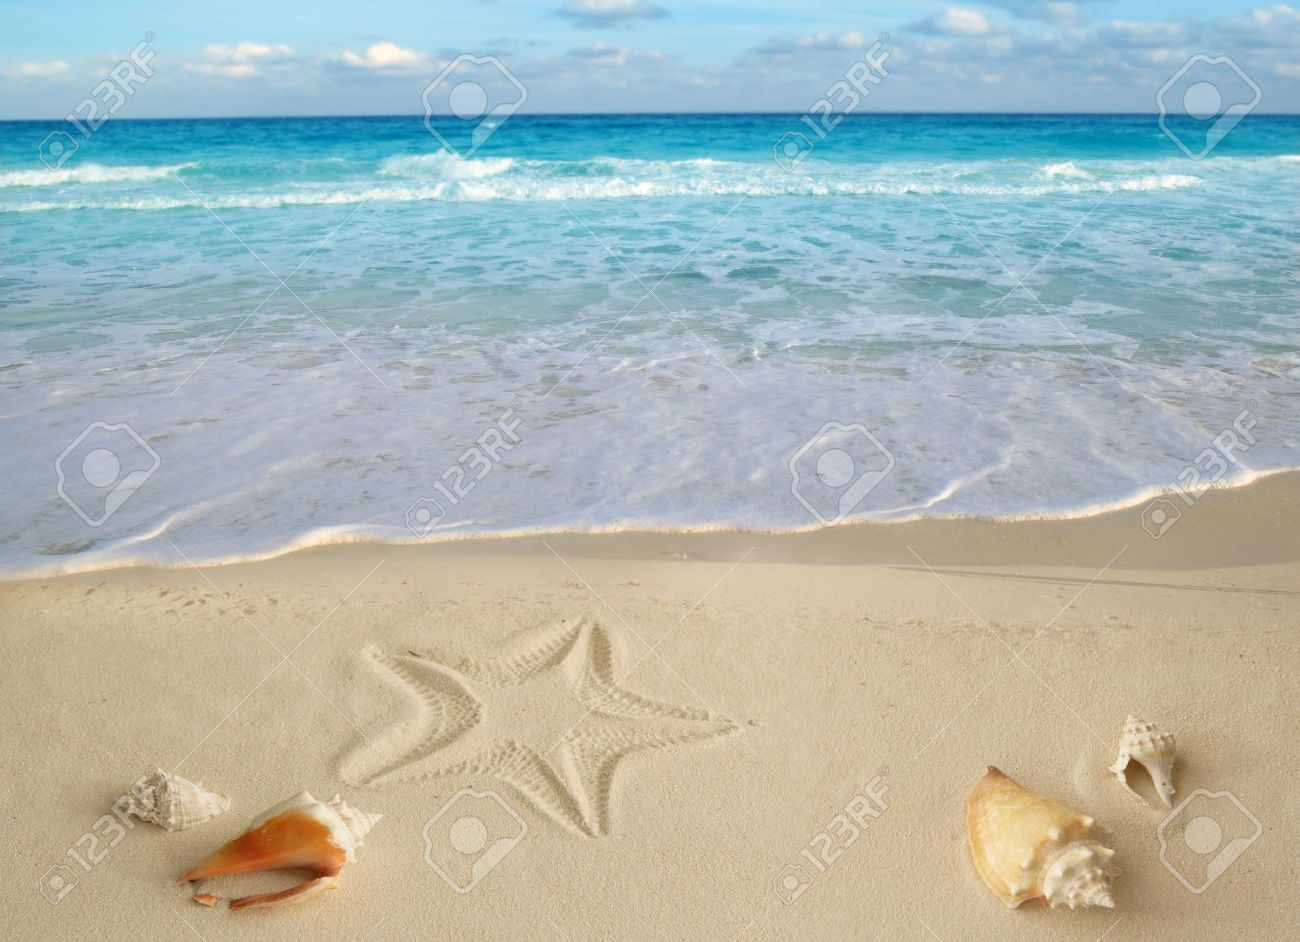 Sea Shells Starfish On Tropical Sand Turquoise Caribbean Summer